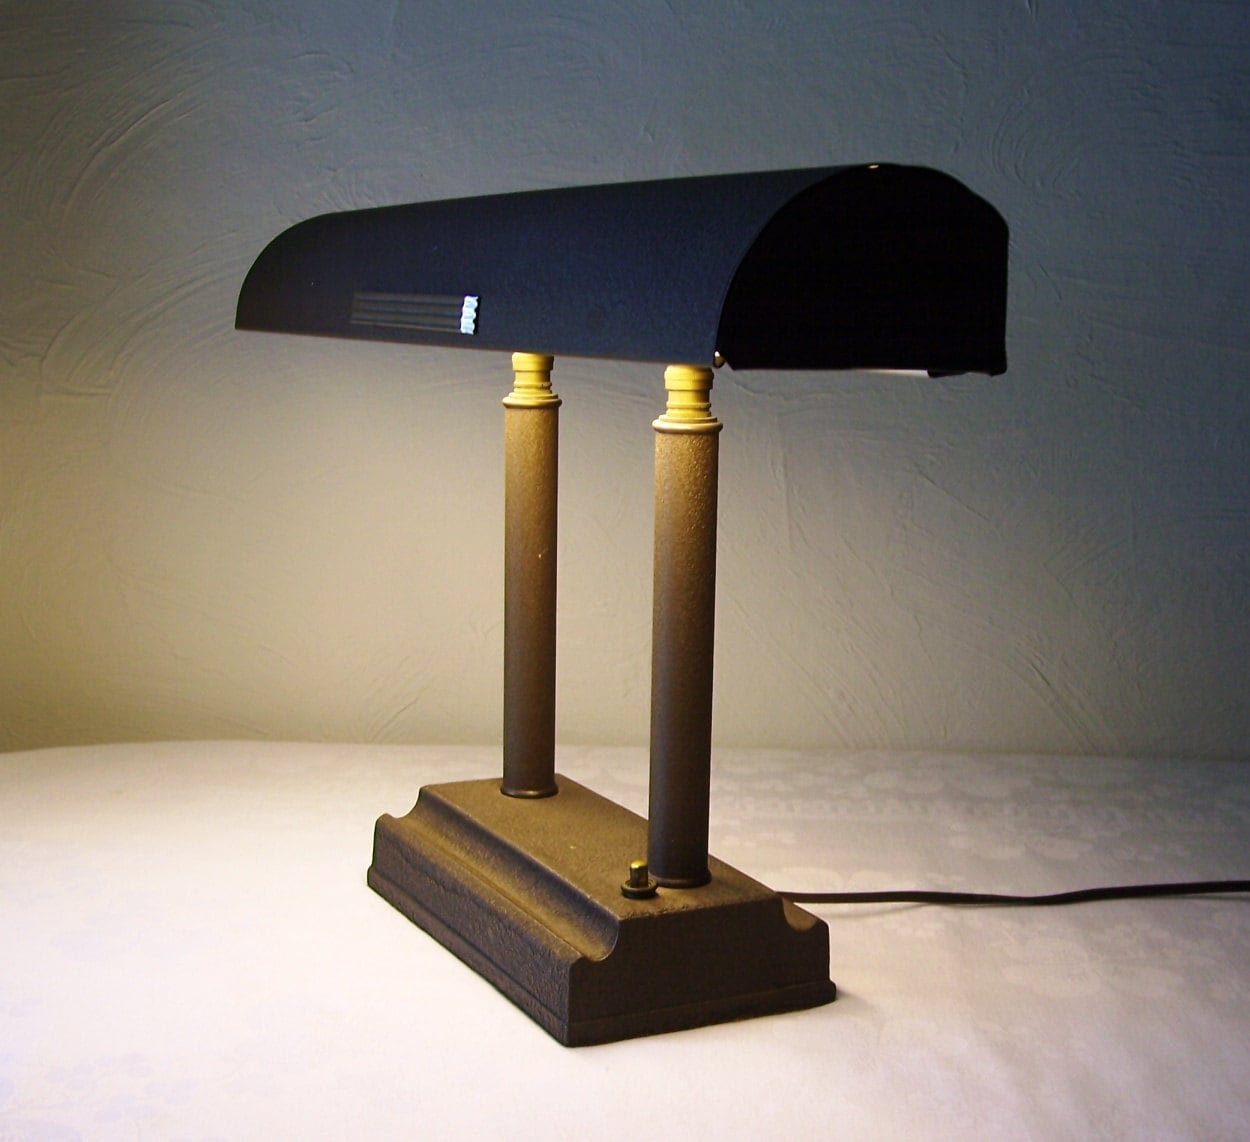 Vintage art deco desk lamp adjustable light for Art deco style lamp